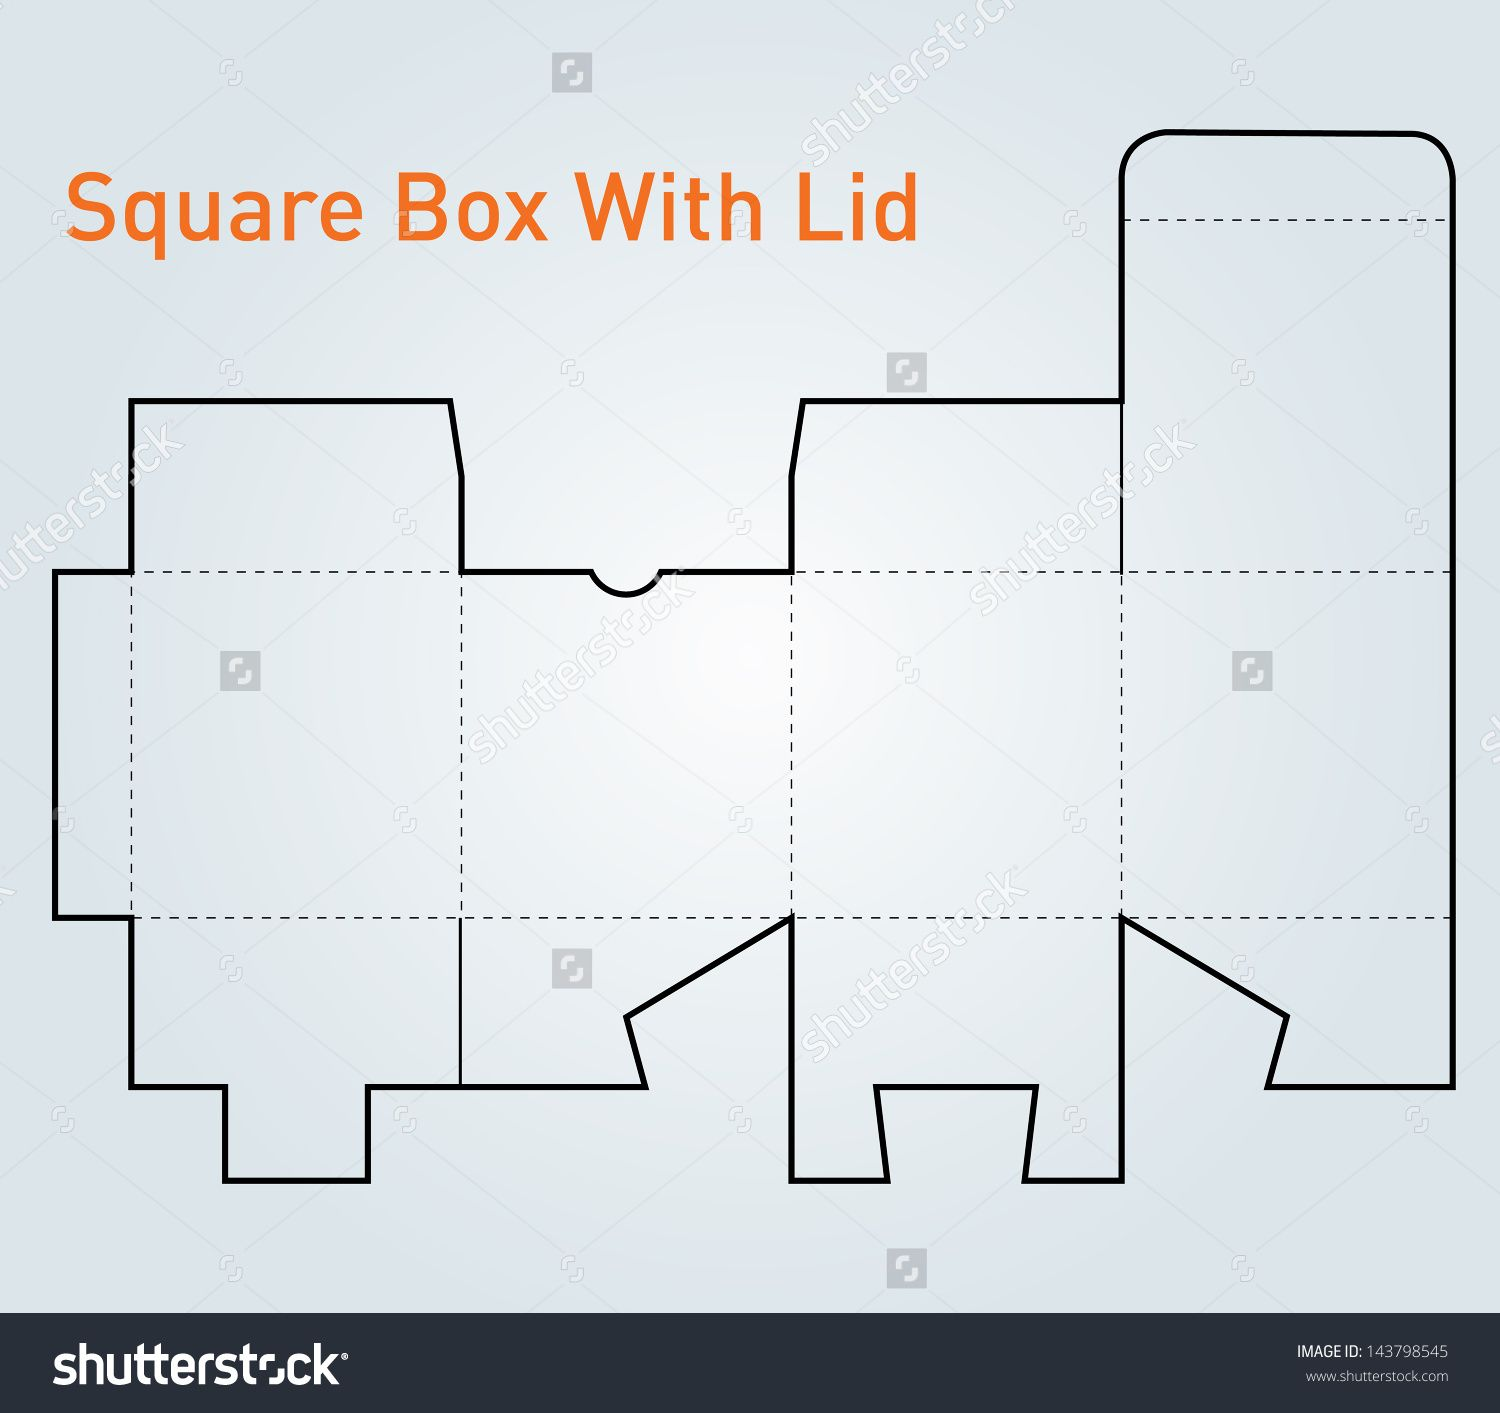 Packaging square box lid template vector stock vector 143798545 packaging square box lid template vector stock vector 143798545 1500x1413 jpeg pronofoot35fo Gallery